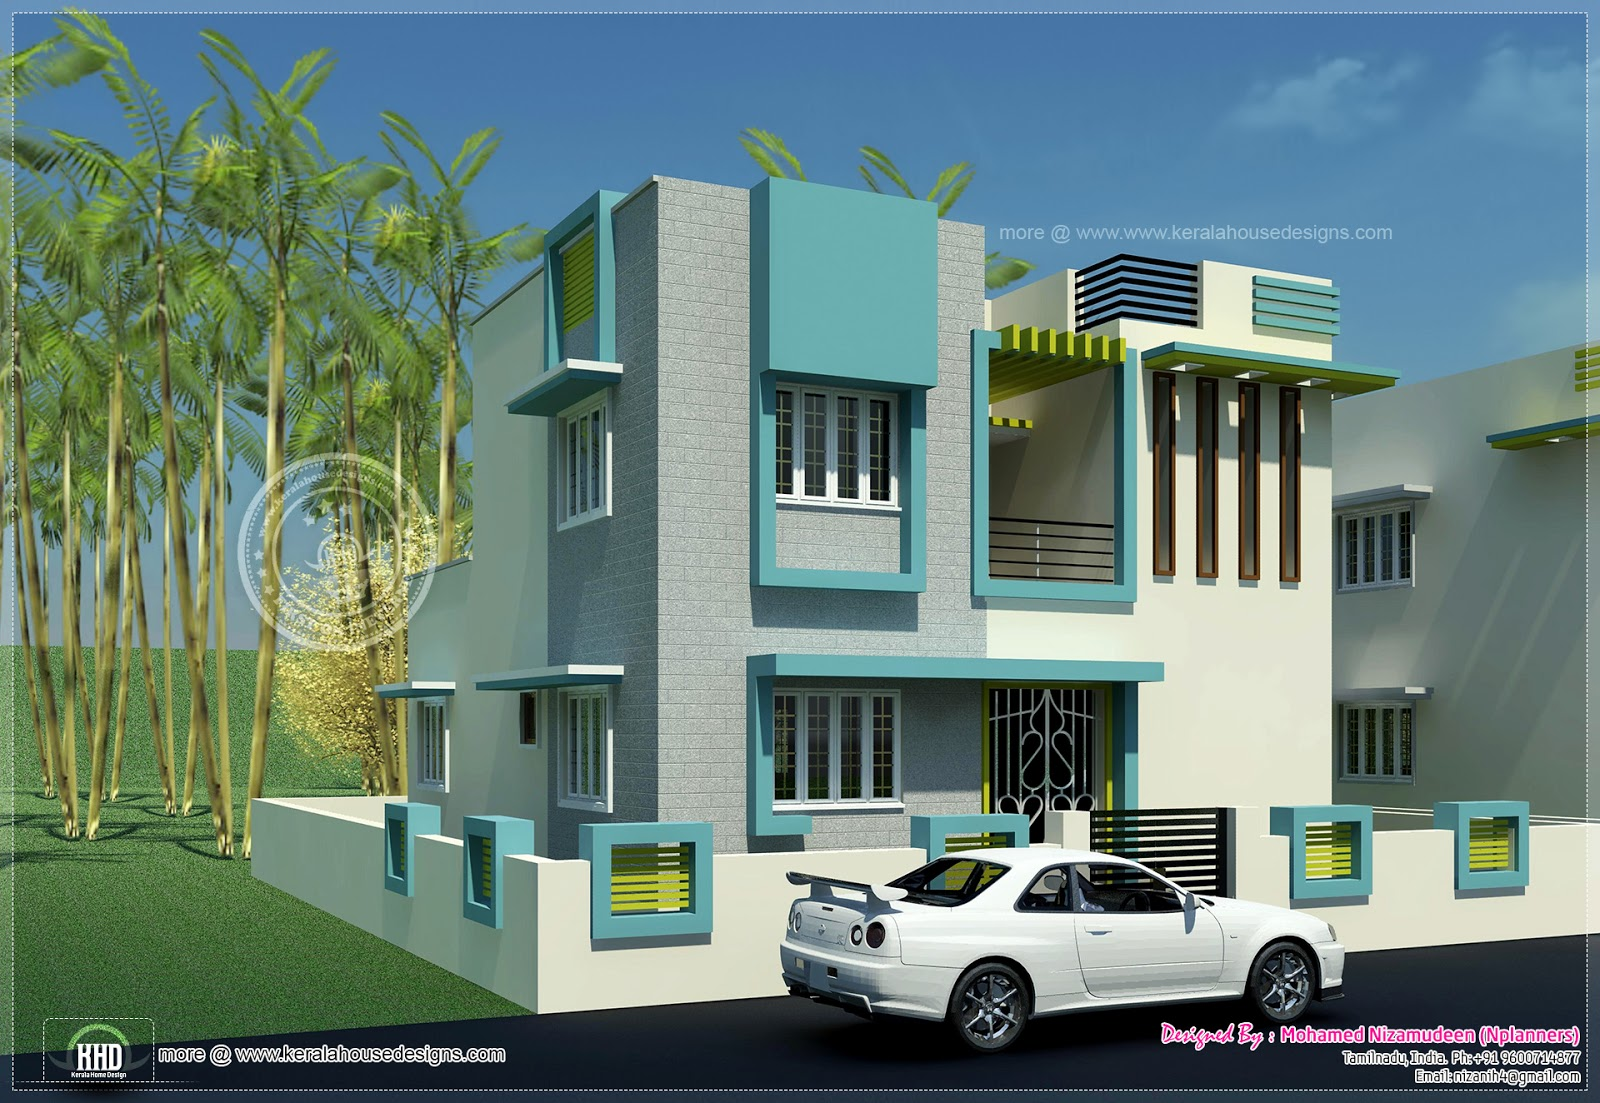 kerala home design and floor plans 1484 south india house plan pool hoouse lest trend. Black Bedroom Furniture Sets. Home Design Ideas